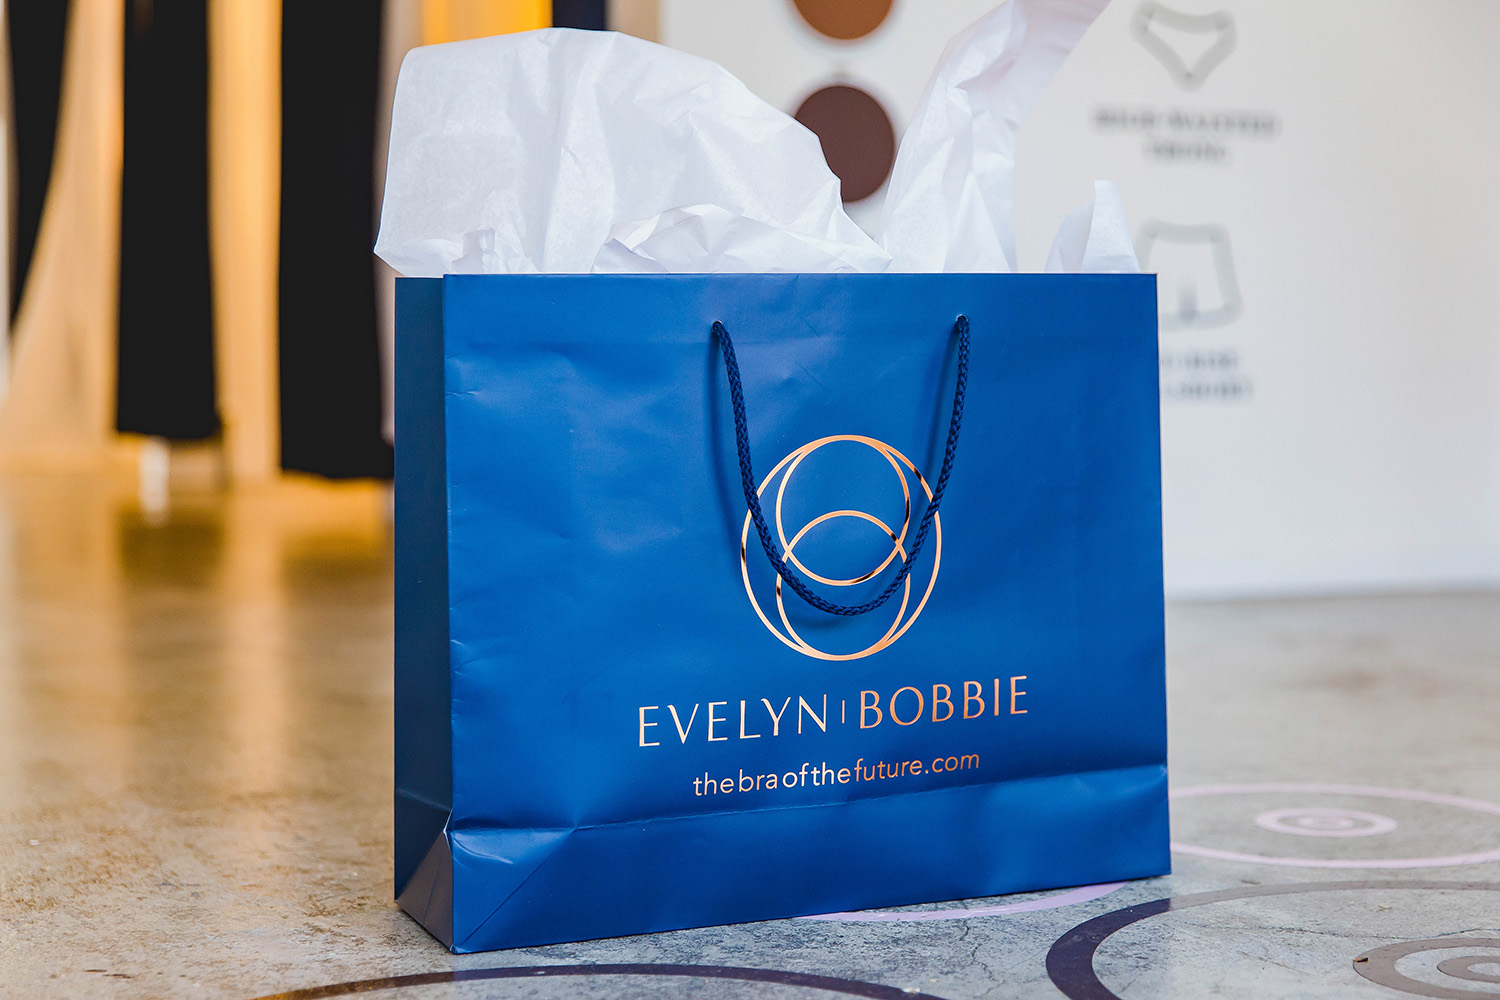 Looking for the most comfortable bra EVER? Evelyn and Bobbie makes the best wireless bras that will literally CHANGE your life.